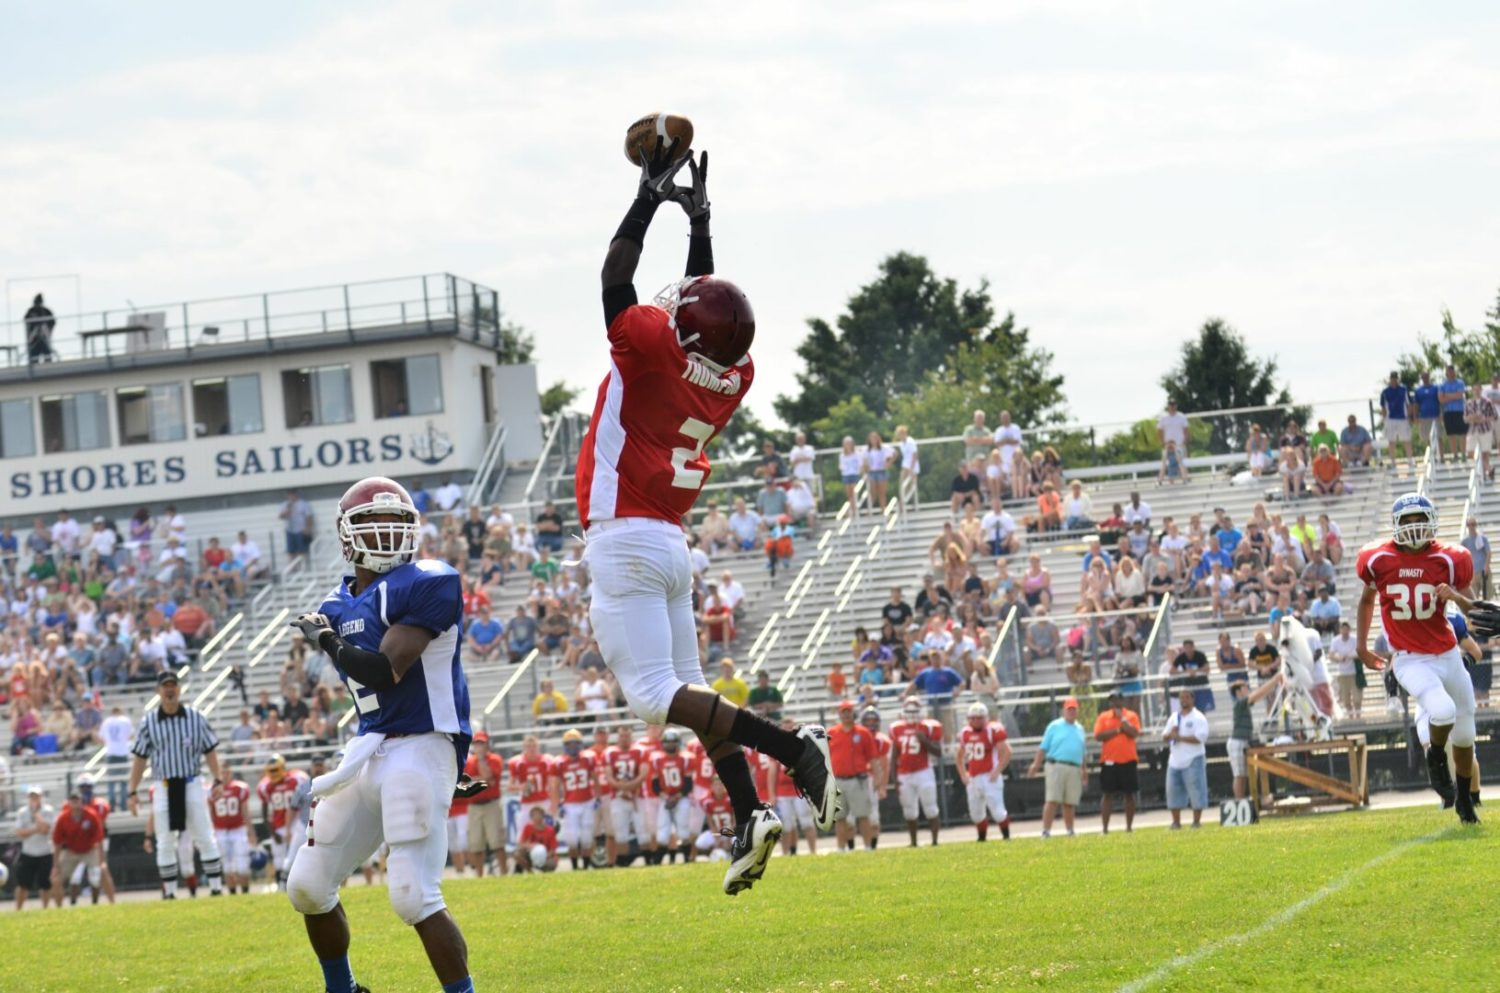 Fall sports kick off this week with football practice on Monday, look for rule changes in football and soccer by the MHSAA